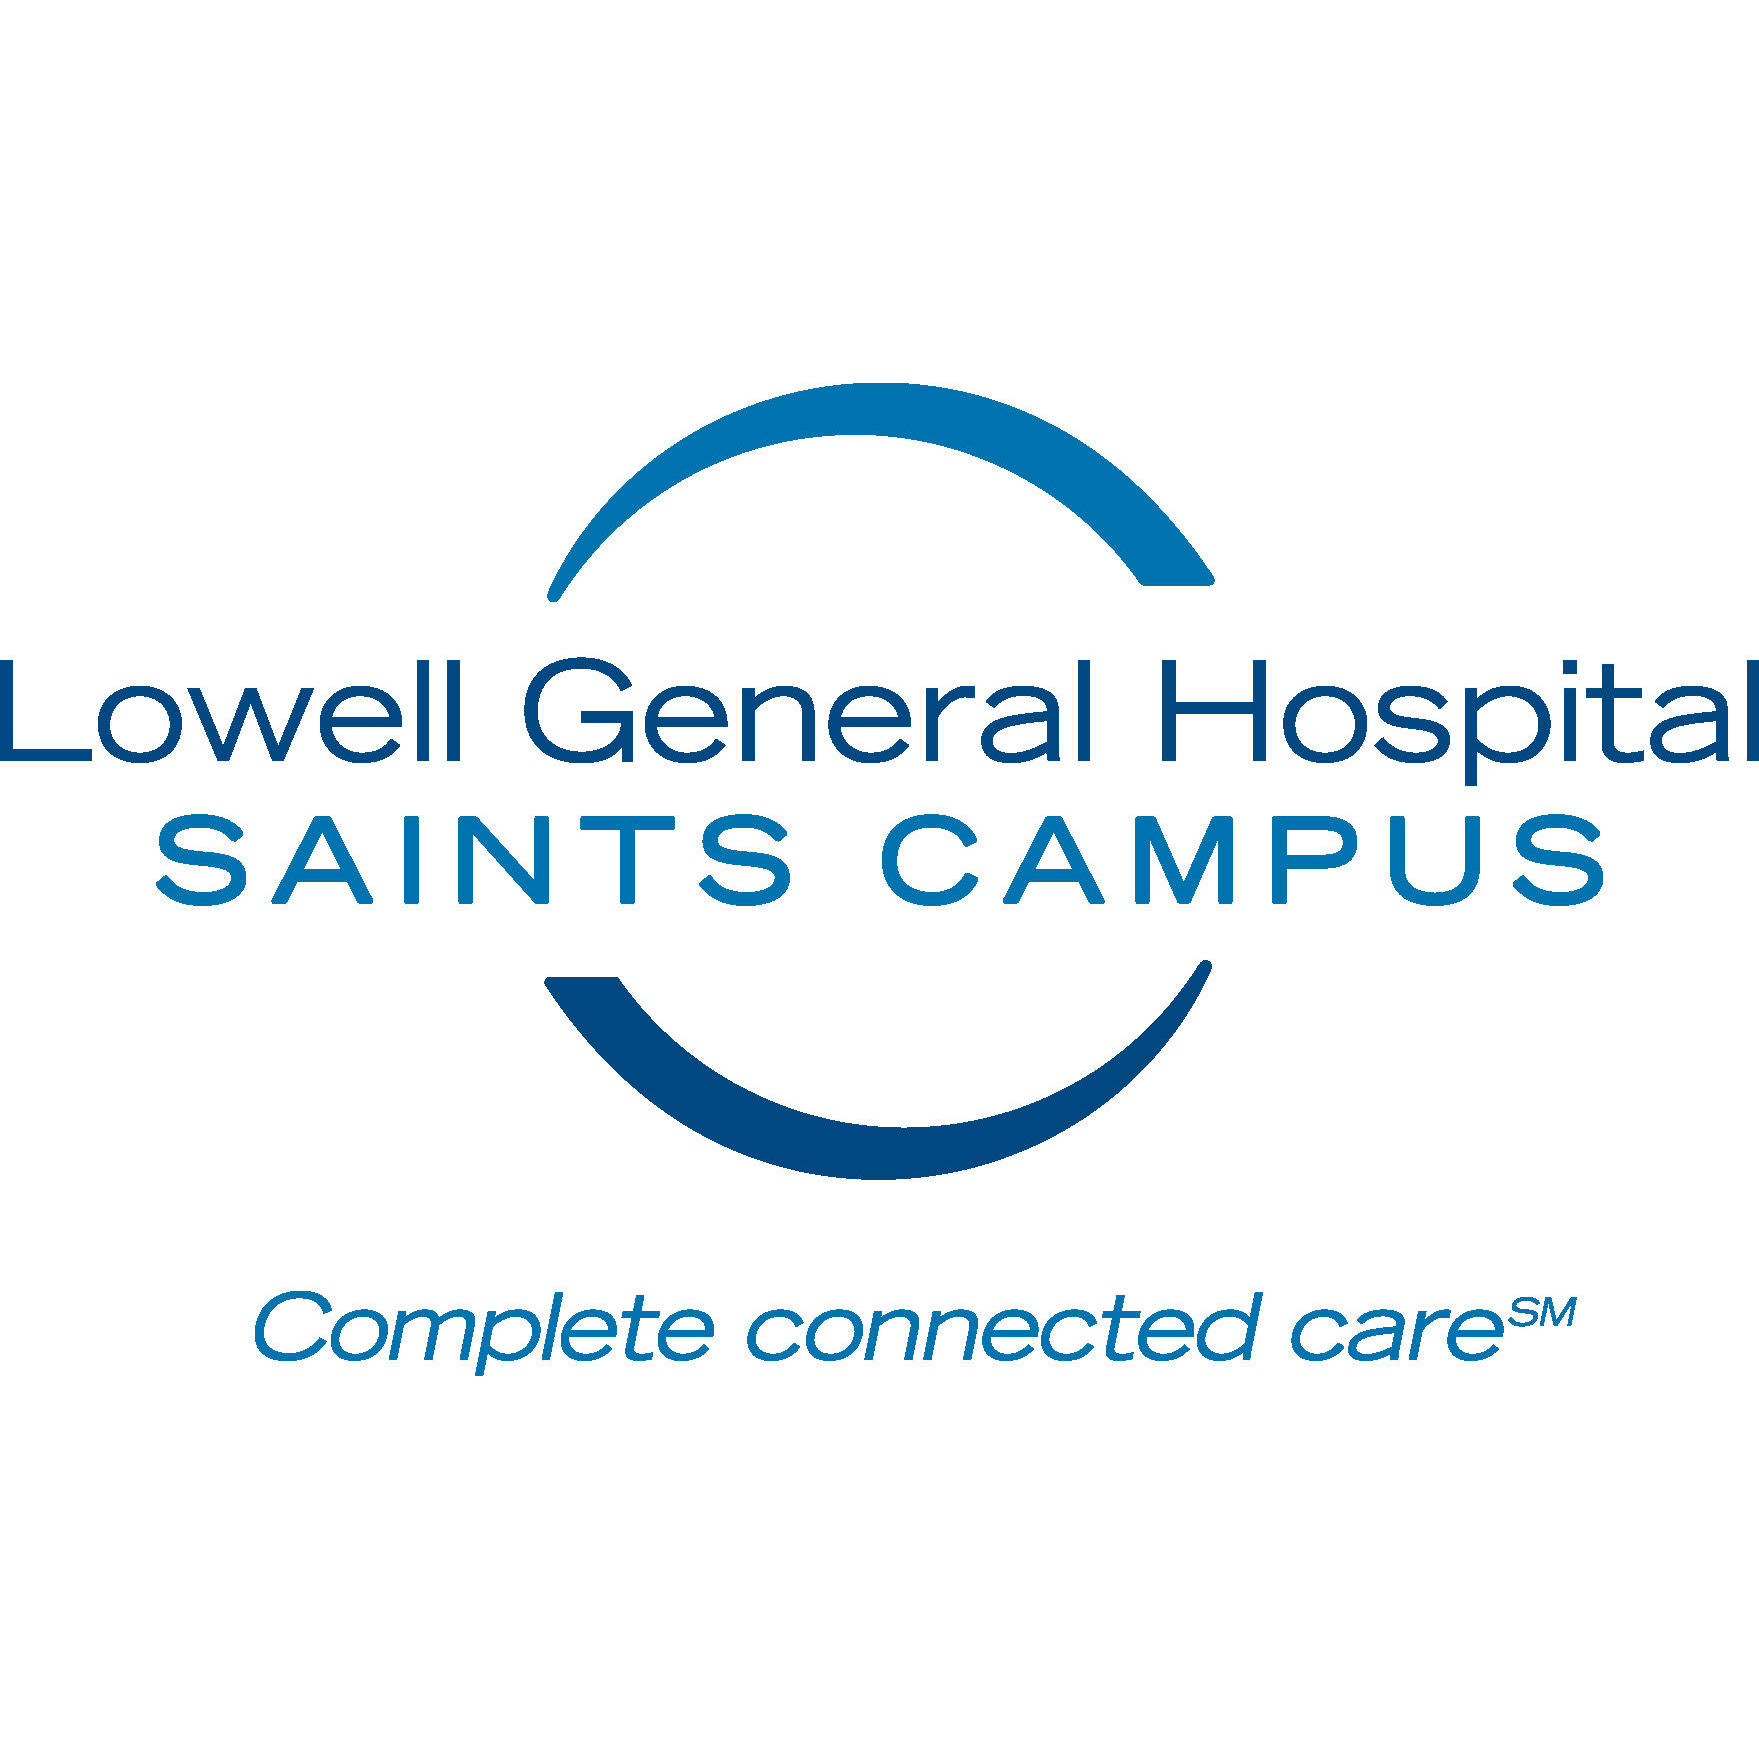 Lowell General Hospital Pain Management Center